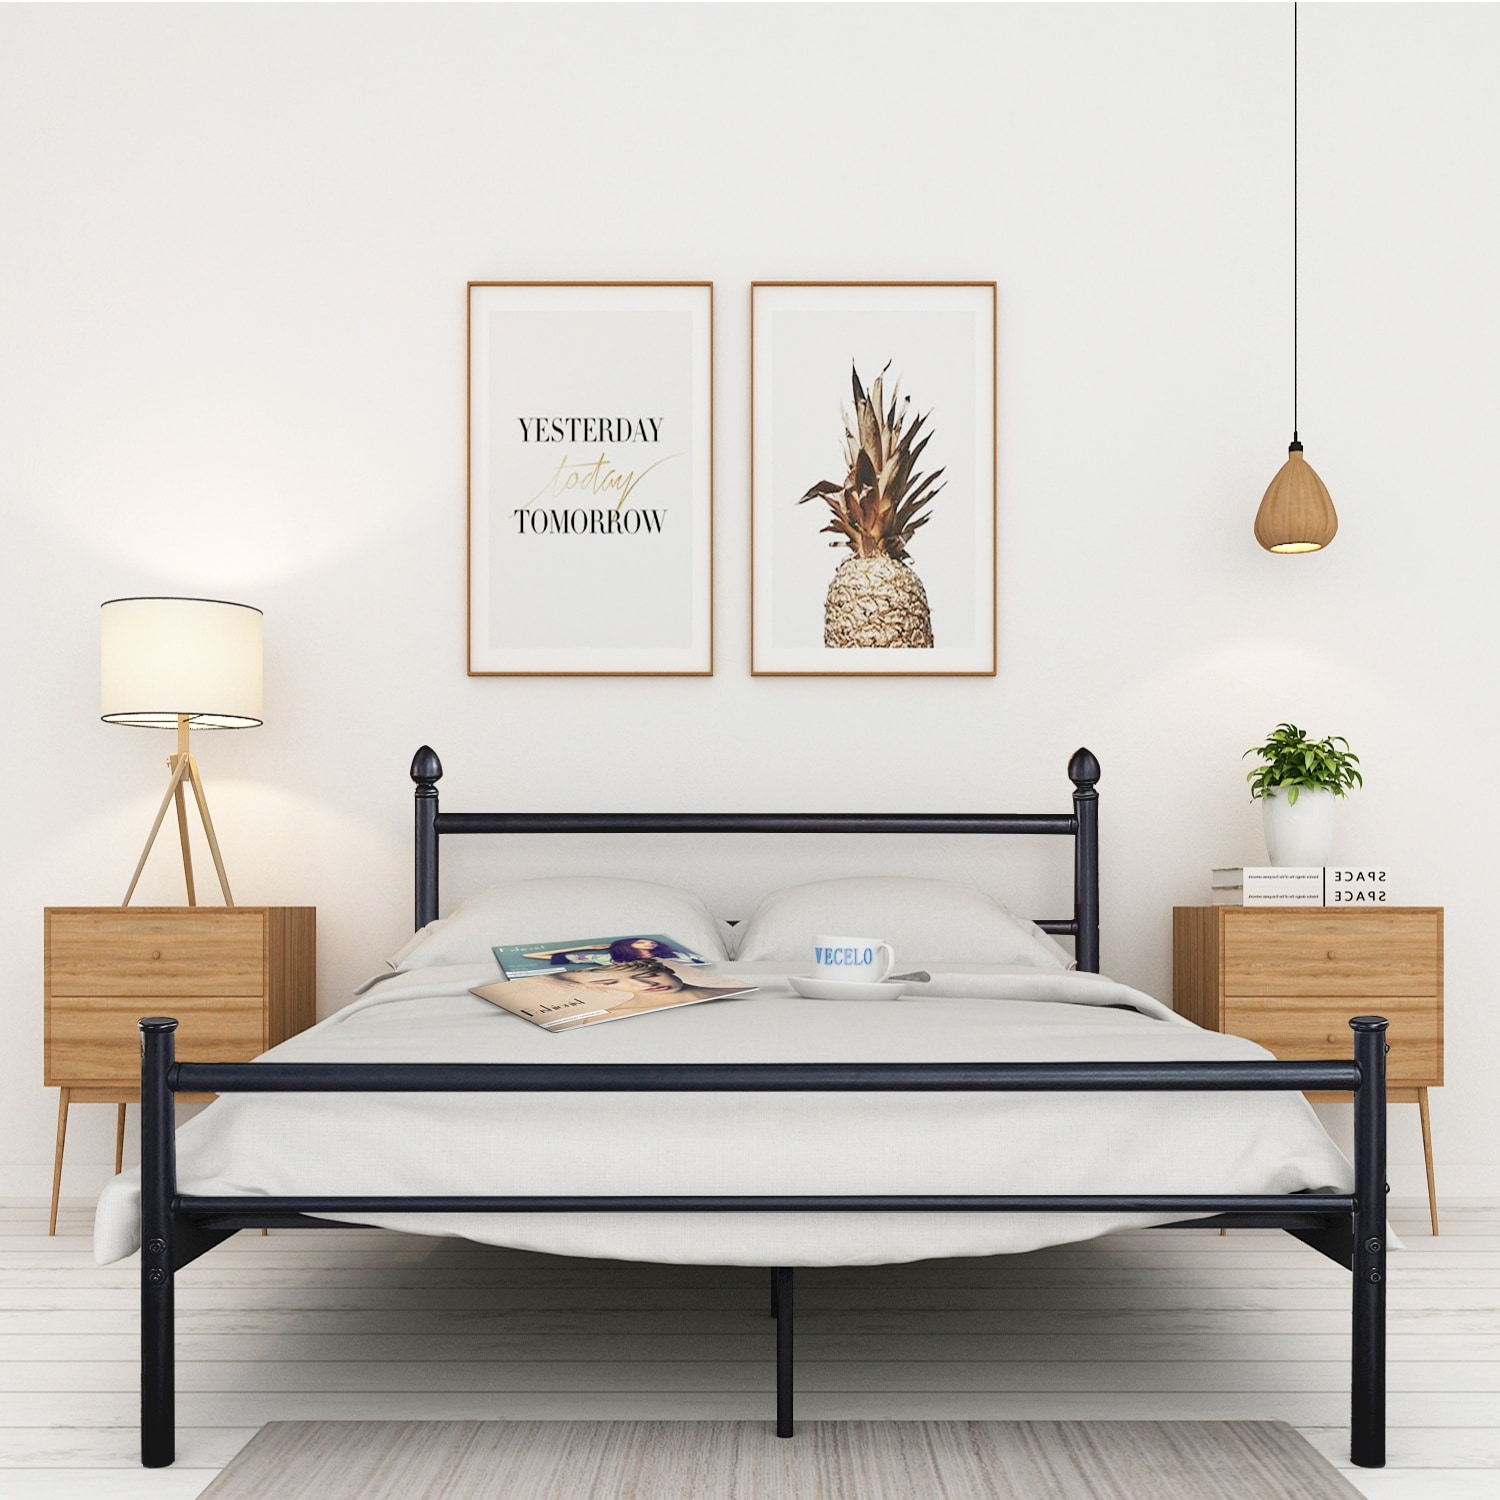 Bed Queen Vecelo Platform Bed Frame Queen Full Twin Size Metal Beds Mattress Foundation With Headboard And Footboard